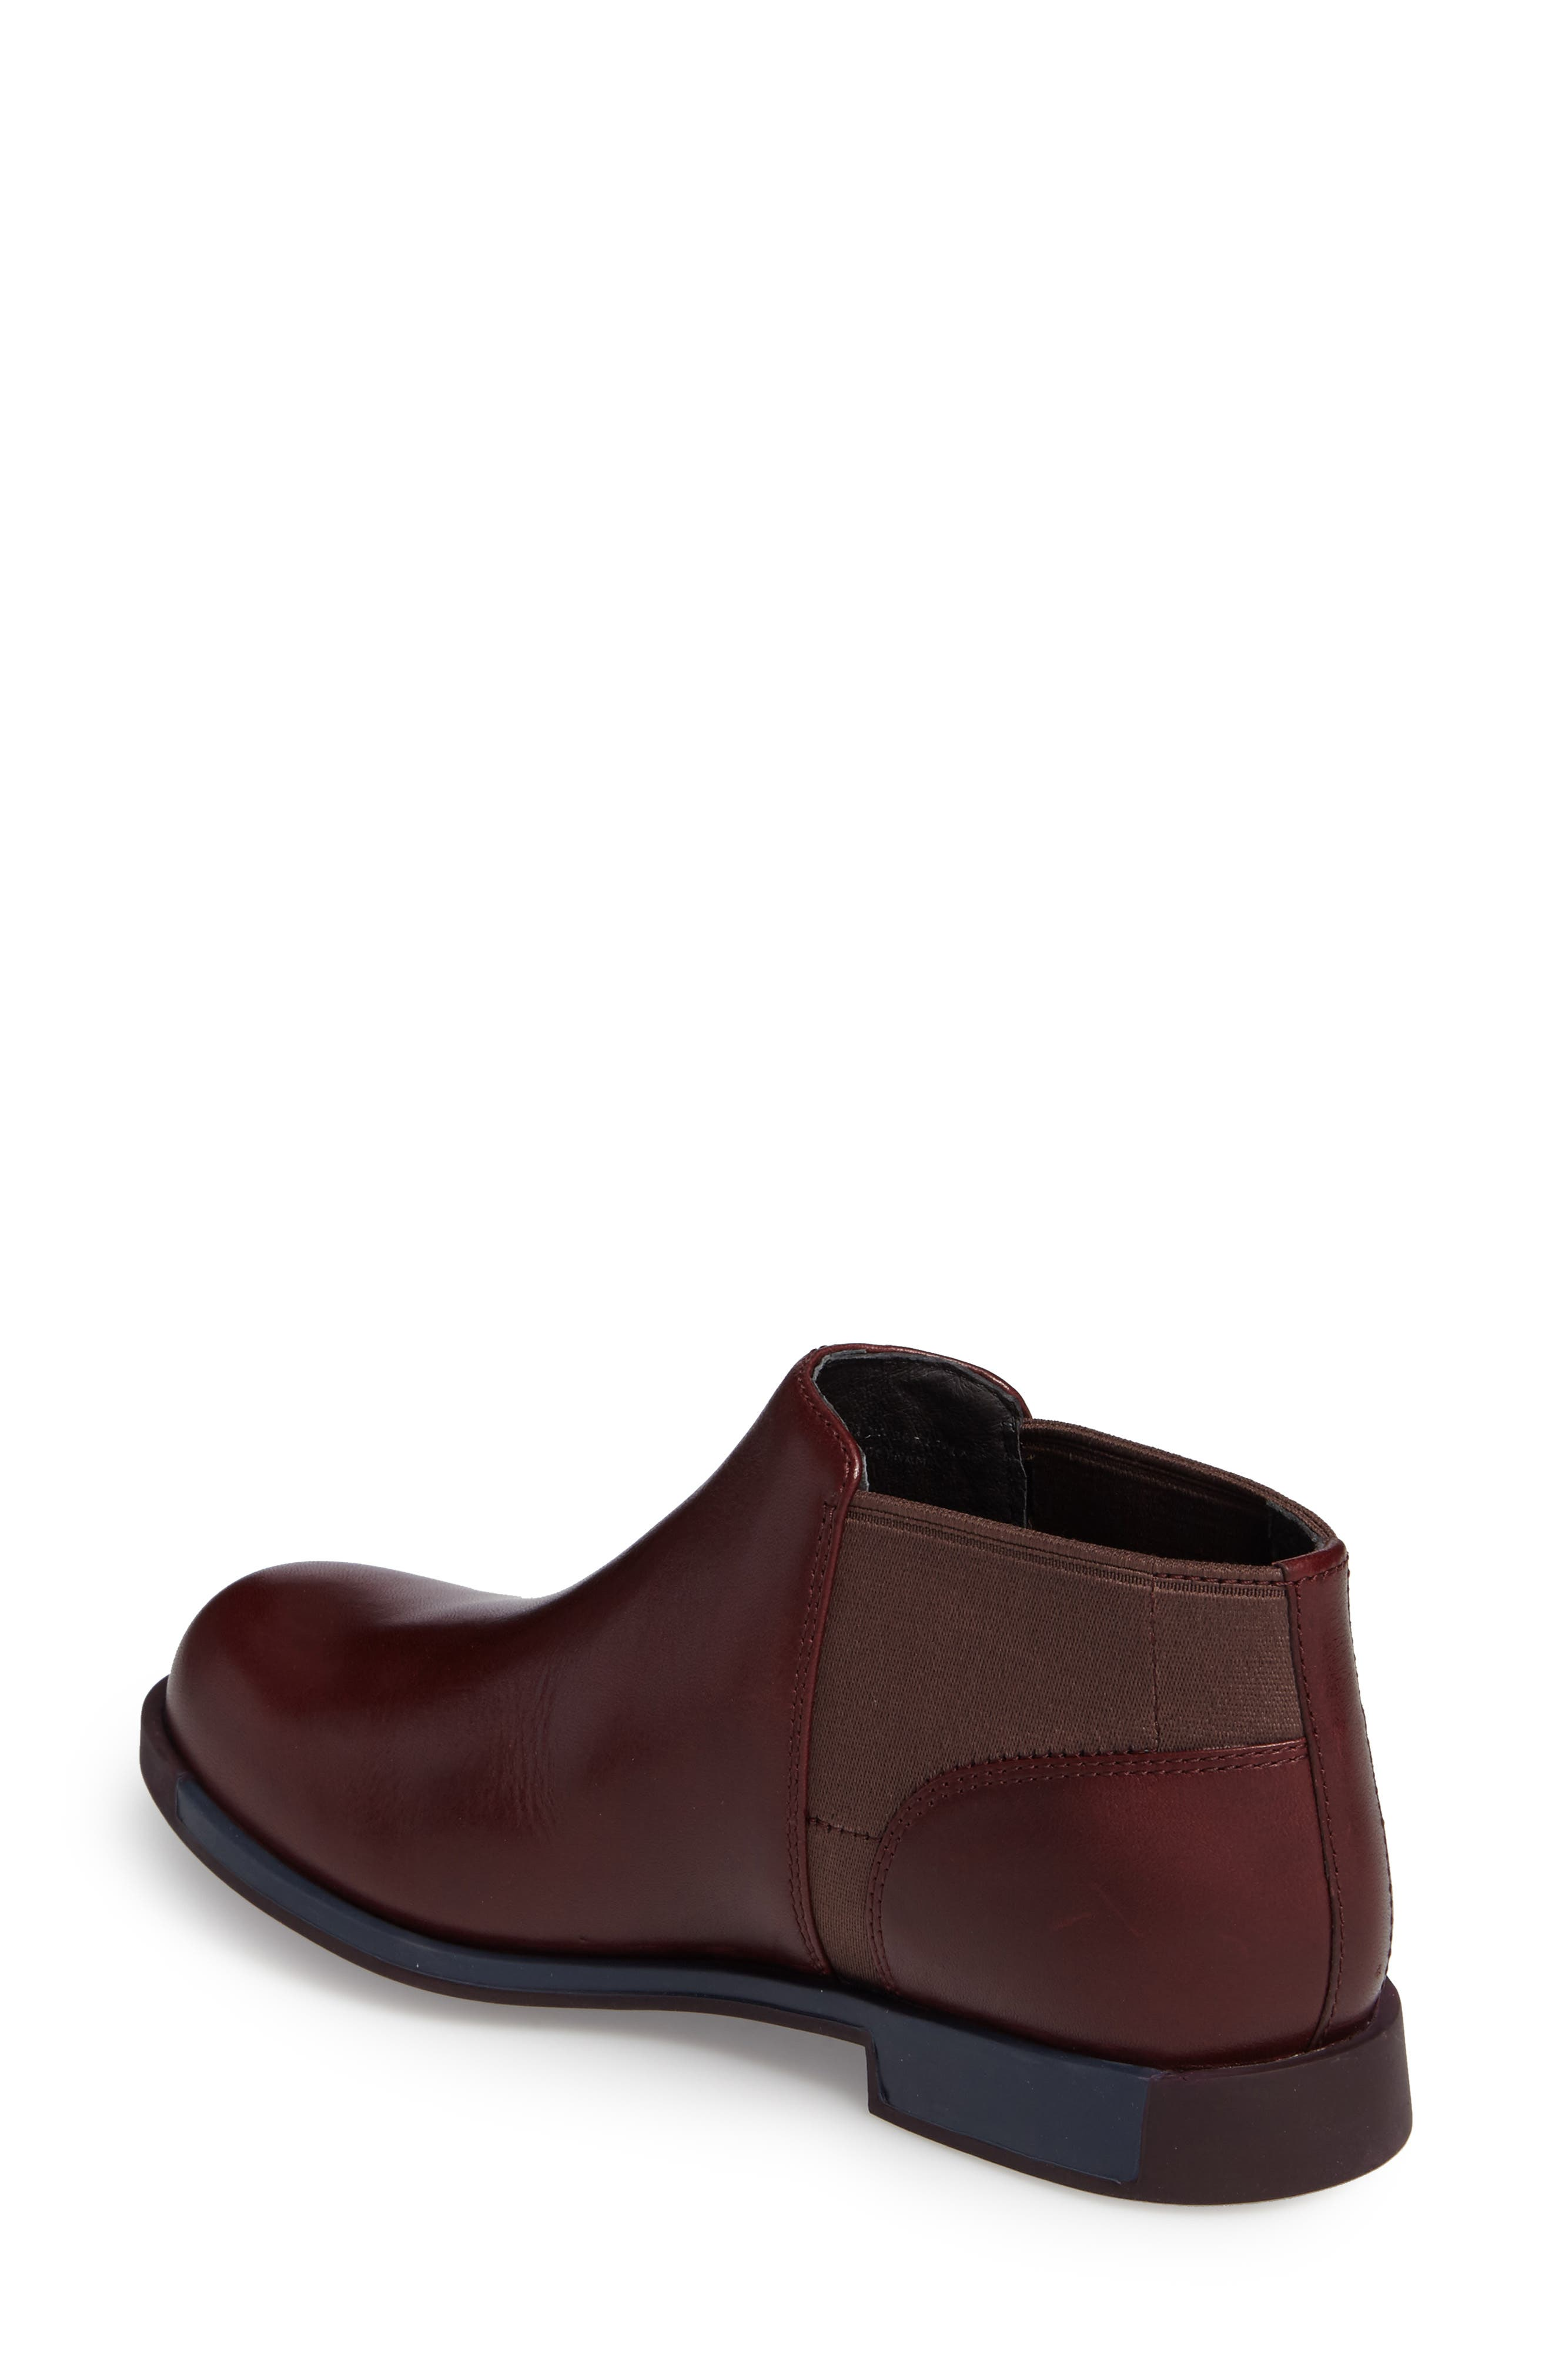 Alternate Image 2  - Camper Bowie Chelsea Boot (Women)